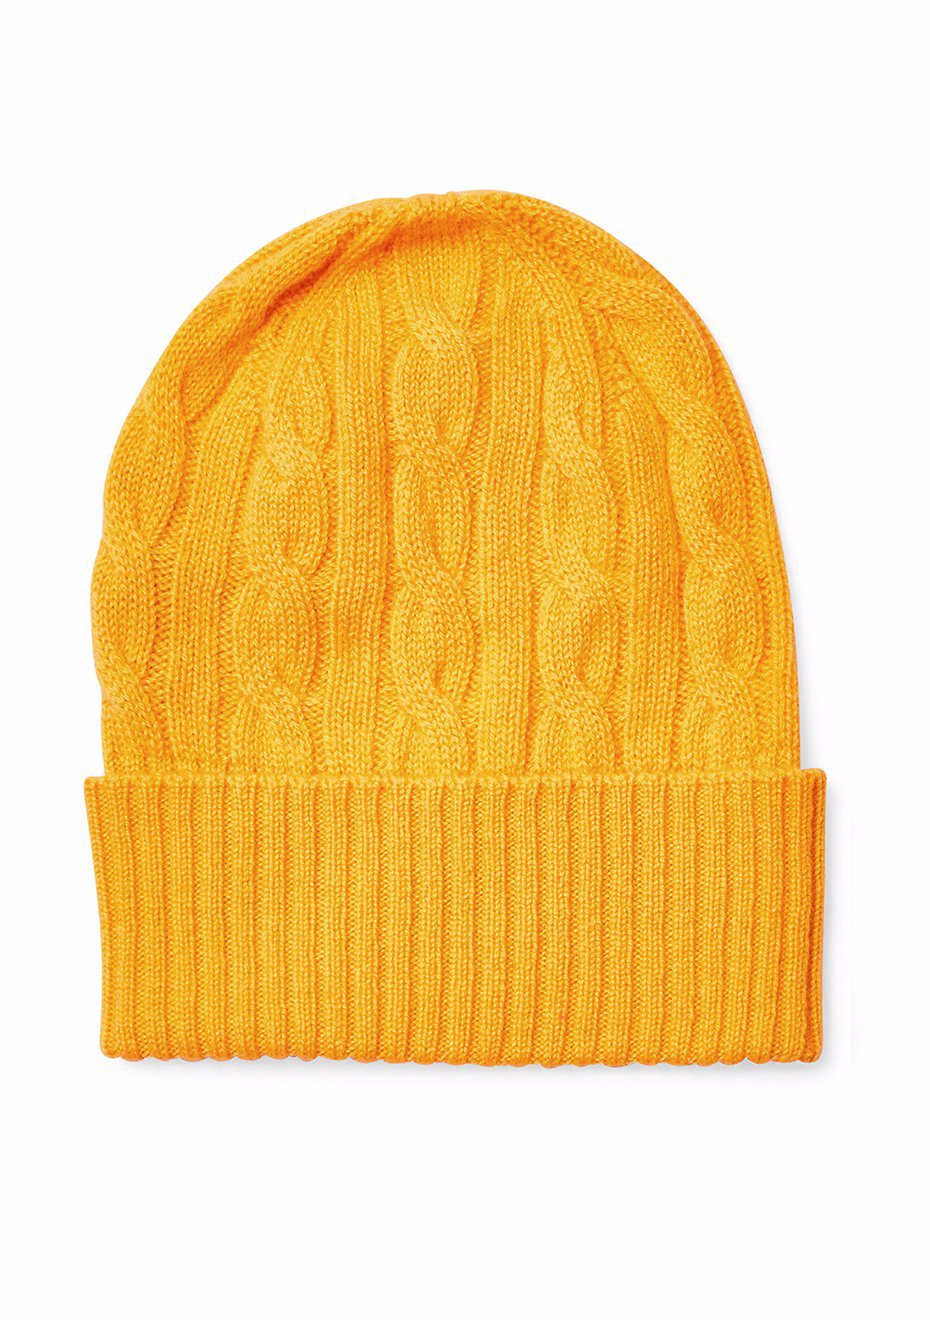 6ba0288a101 Bad Habits Clementine Cashmere Hat